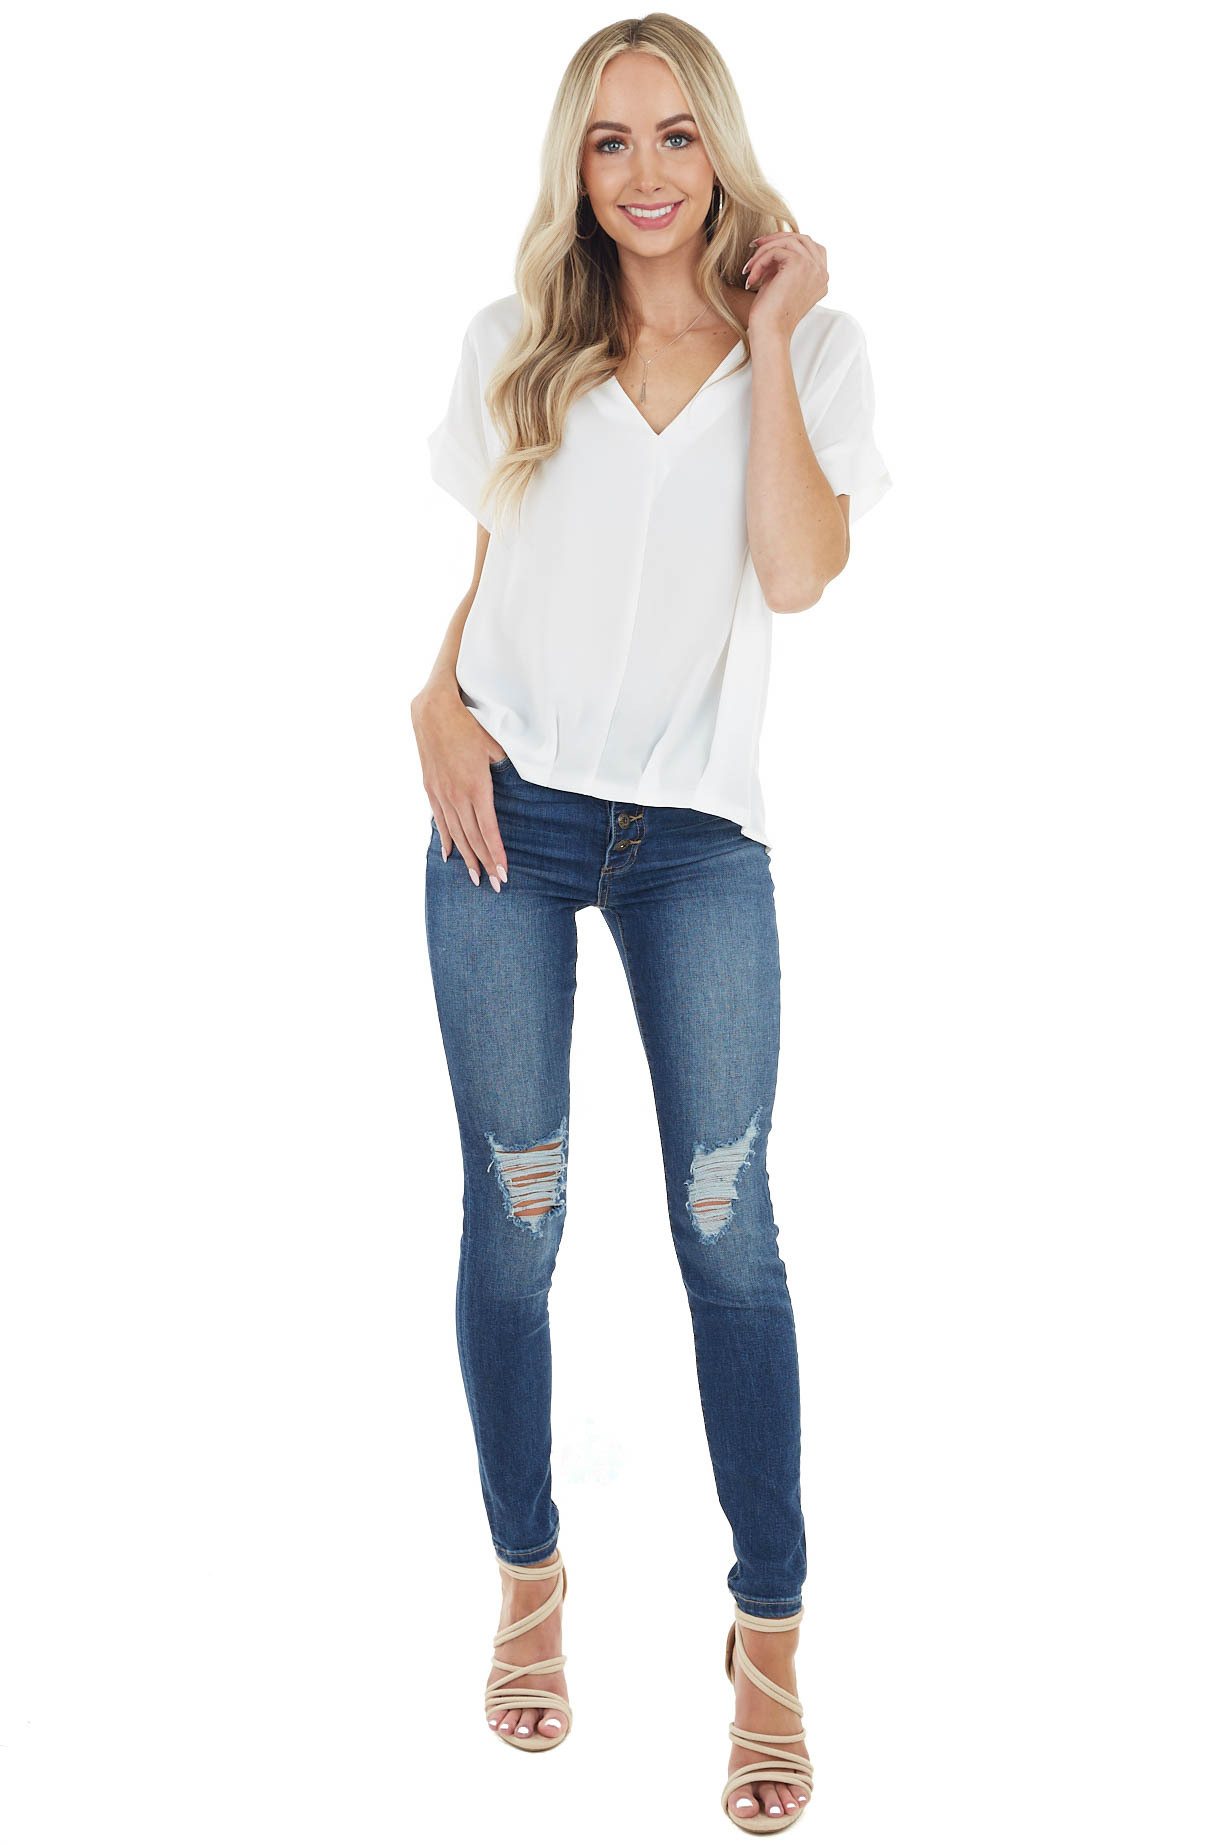 Off White Short Sleeve Blouse with High Low Hemline